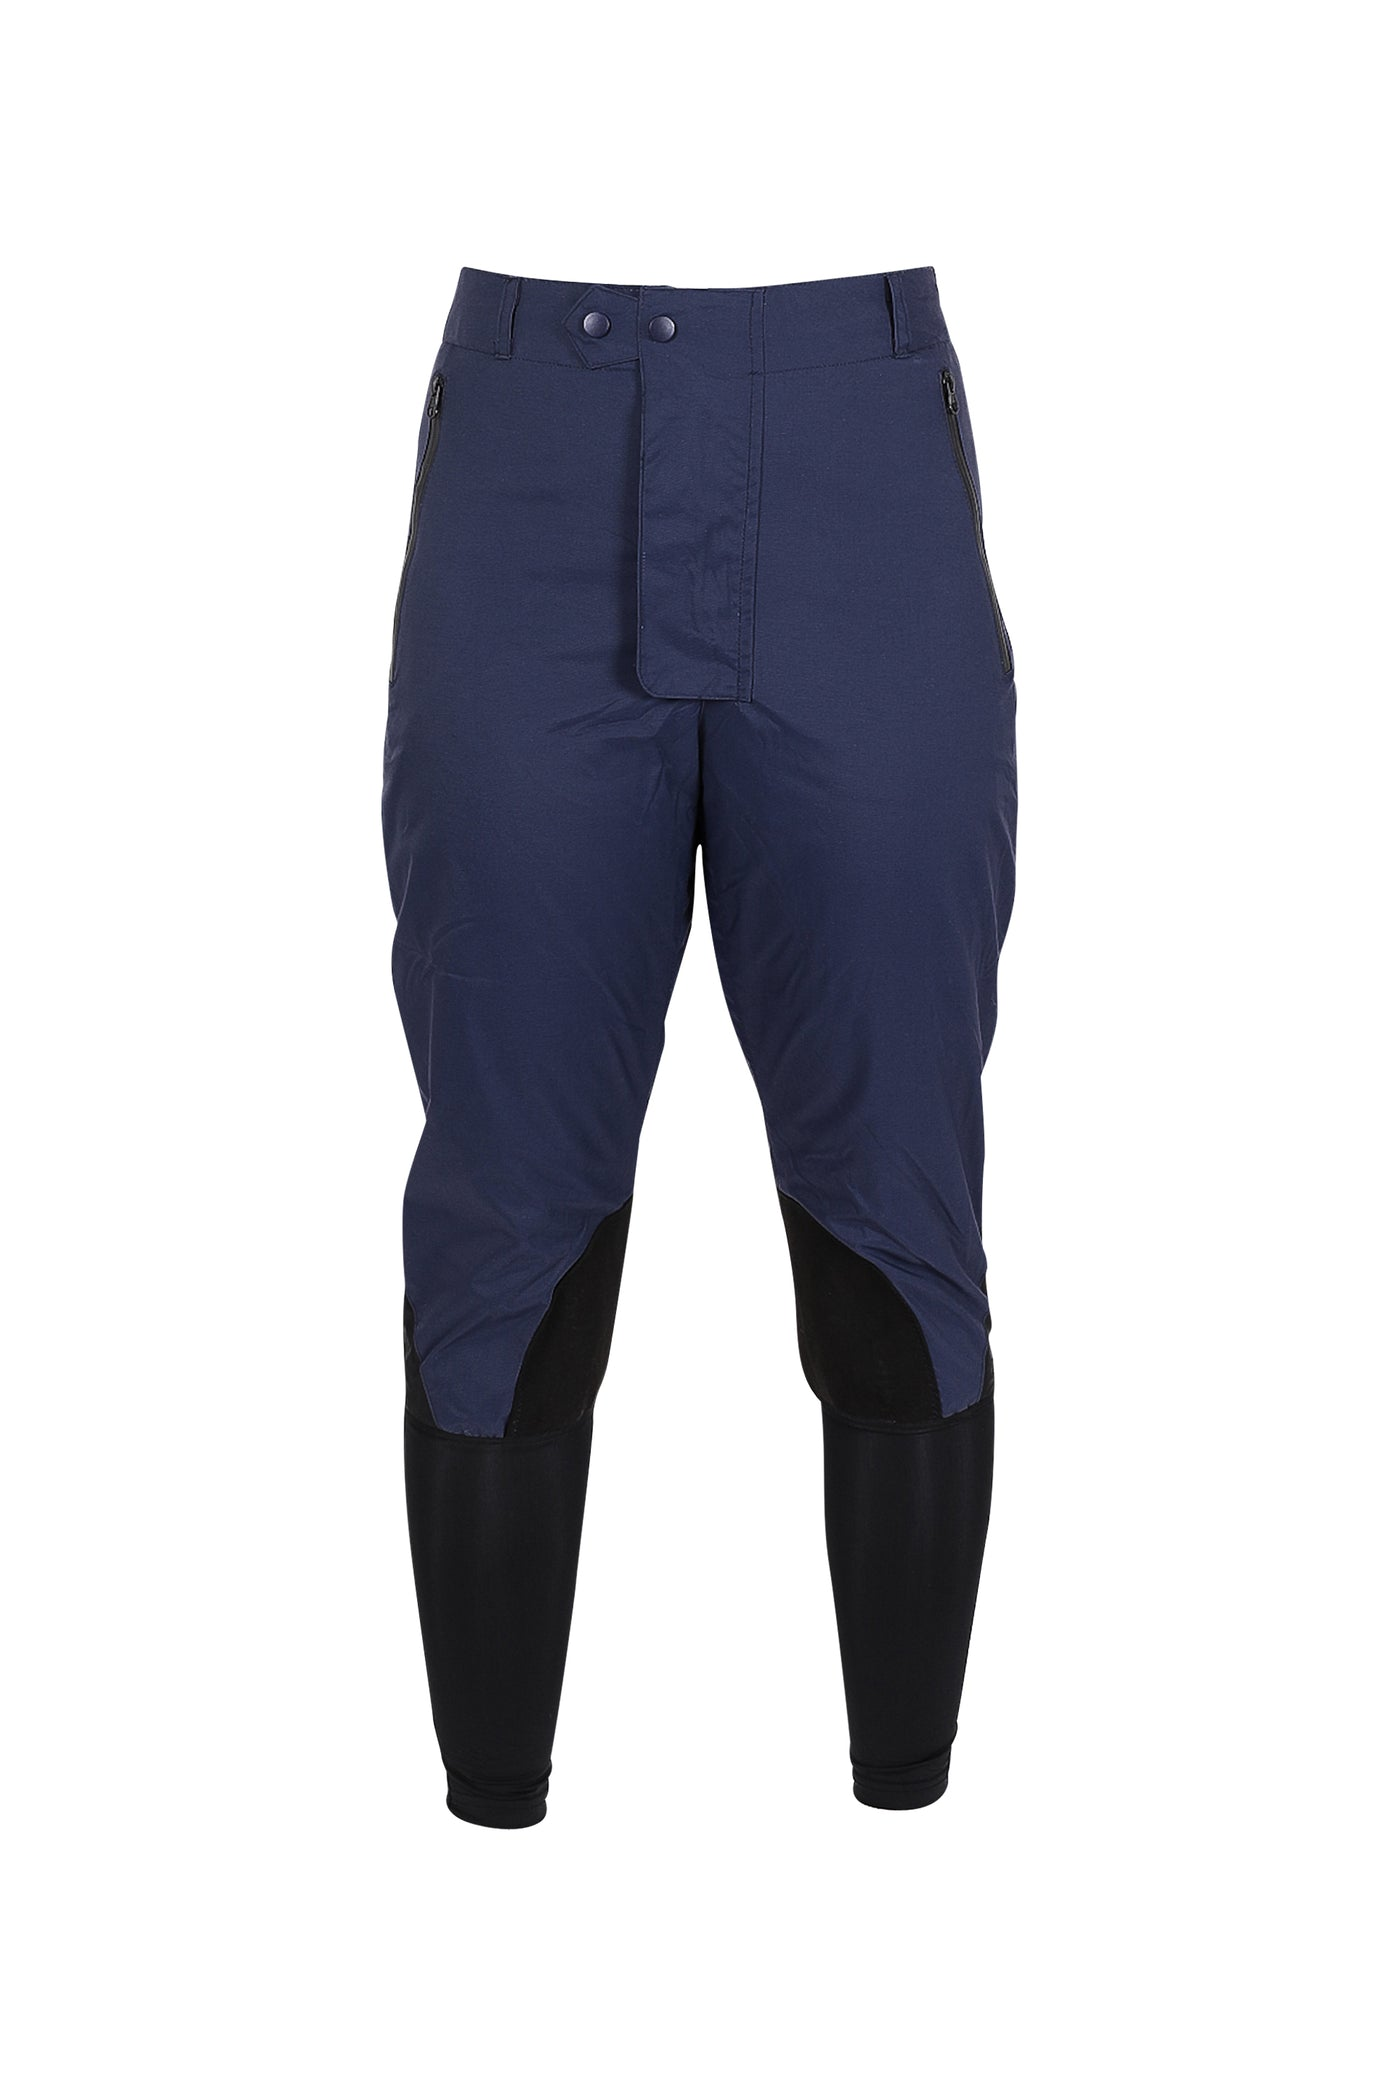 Waterproof breeches